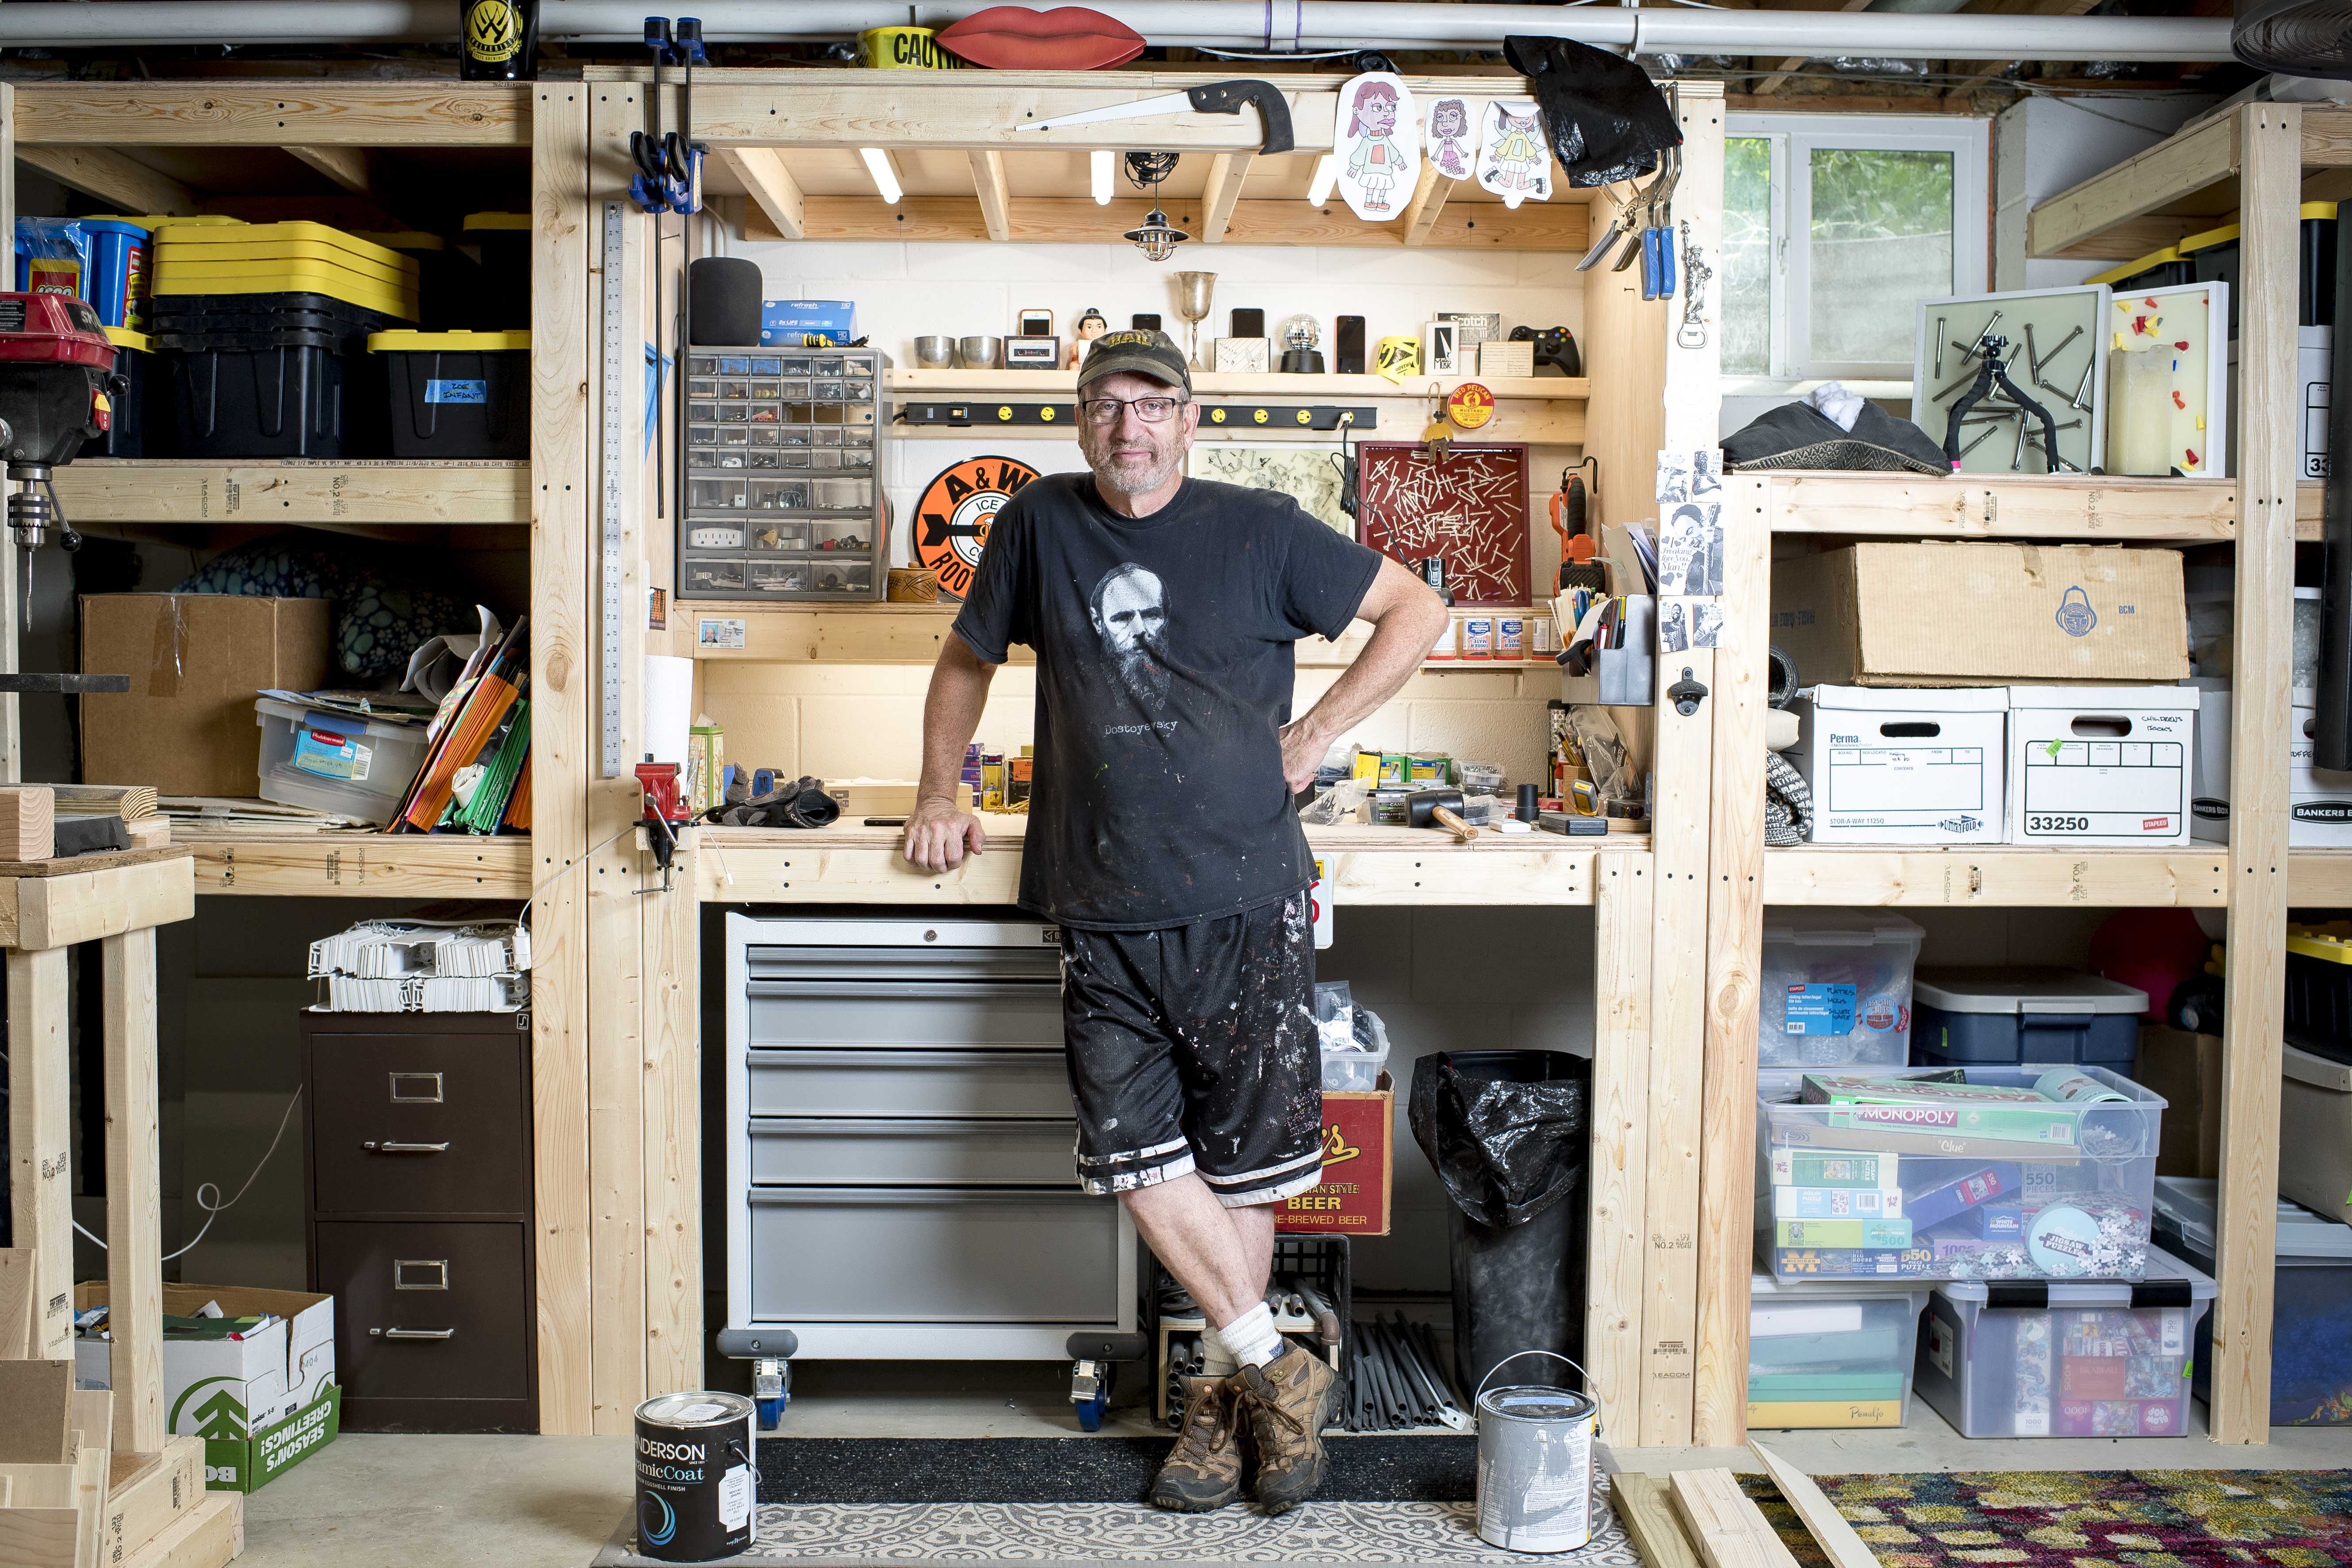 John Schumacher stood in his basement workshop at his home in Ann Arbor, Mich. Schumacher spent his career working as a middle school teacher in Hanover, Mass., until he retired early to move back to his home state of Michigan in December 2020.